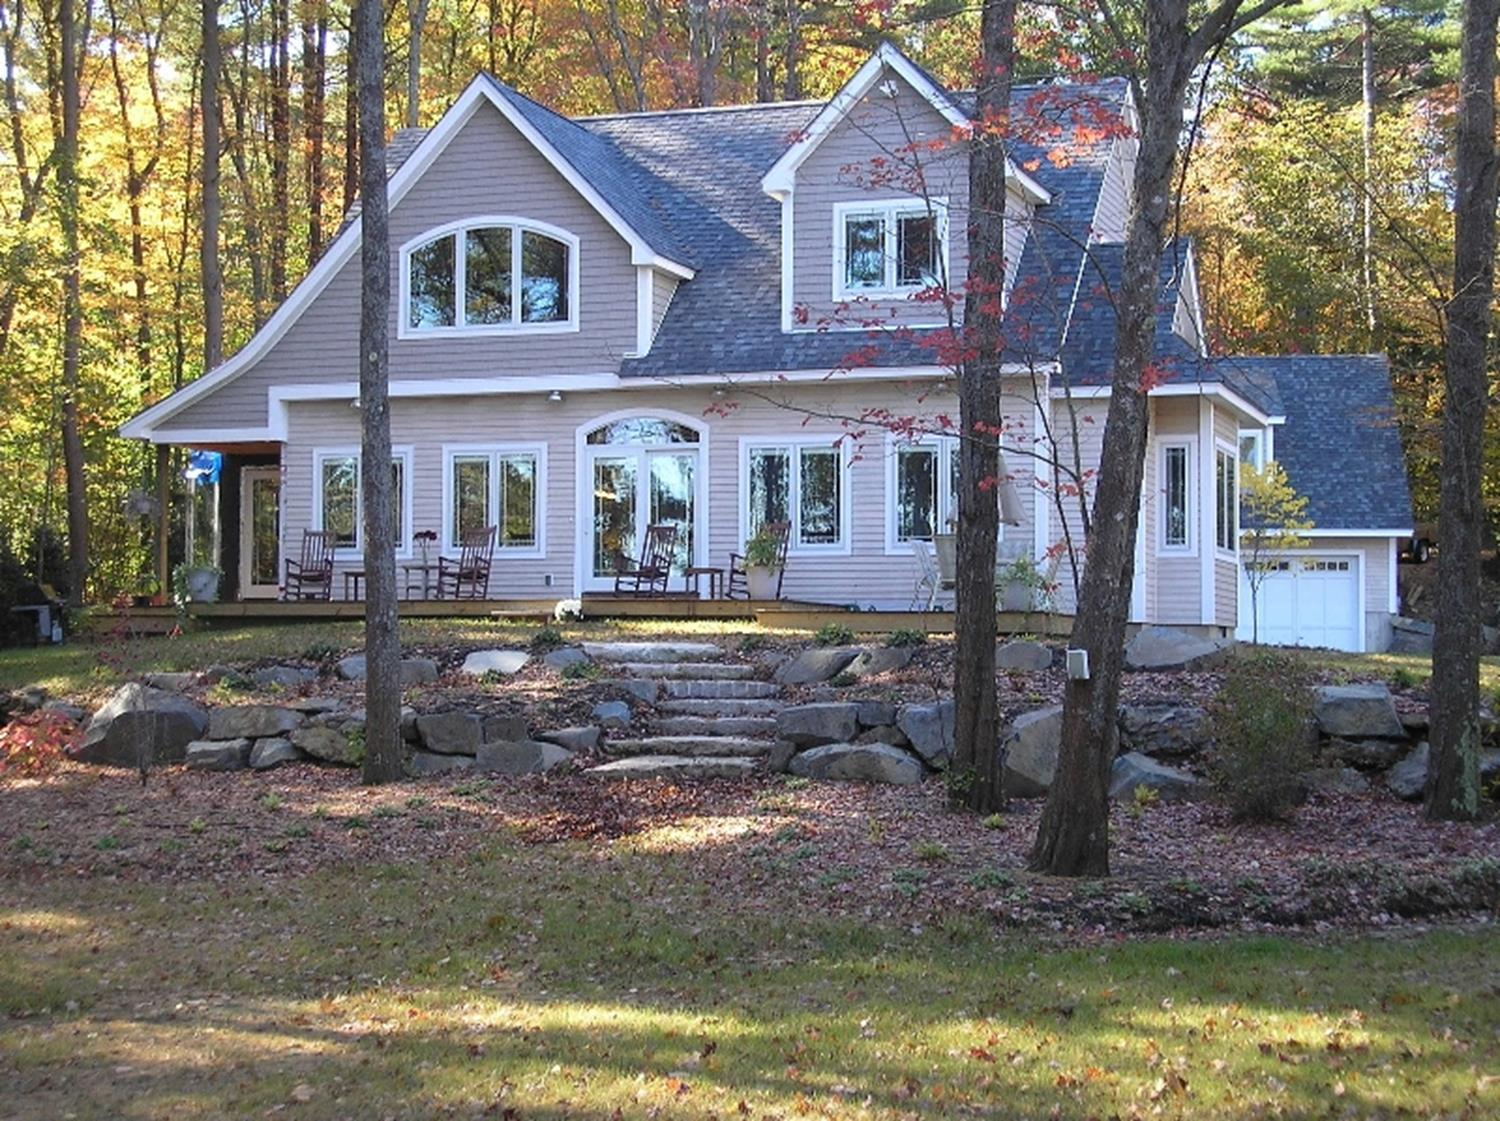 Beautiful cape cod modular home in a wooded area